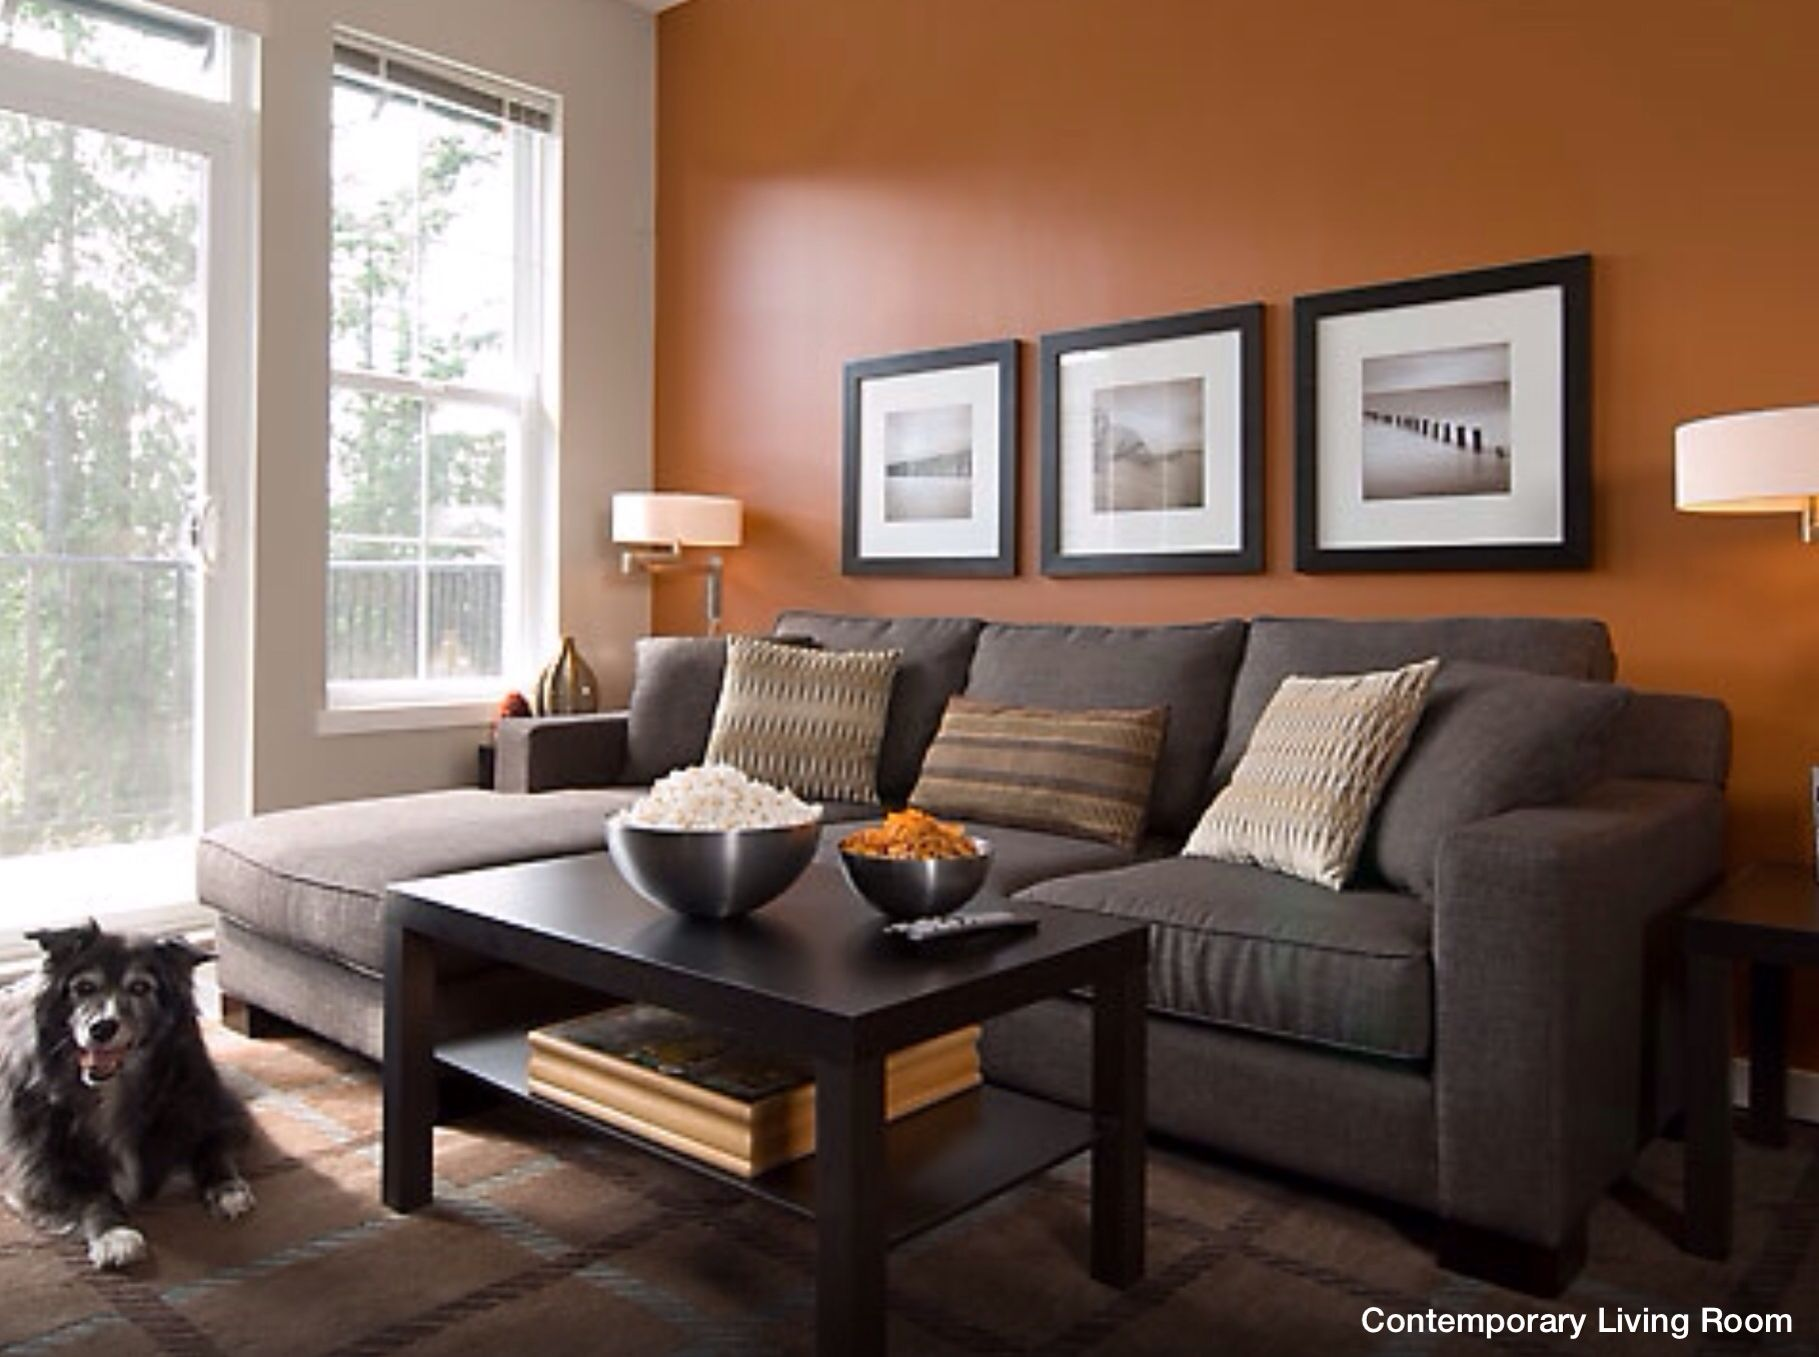 Wall Accent Color Burnt Orange Living Room Living Room Orange Orange Living Room Walls